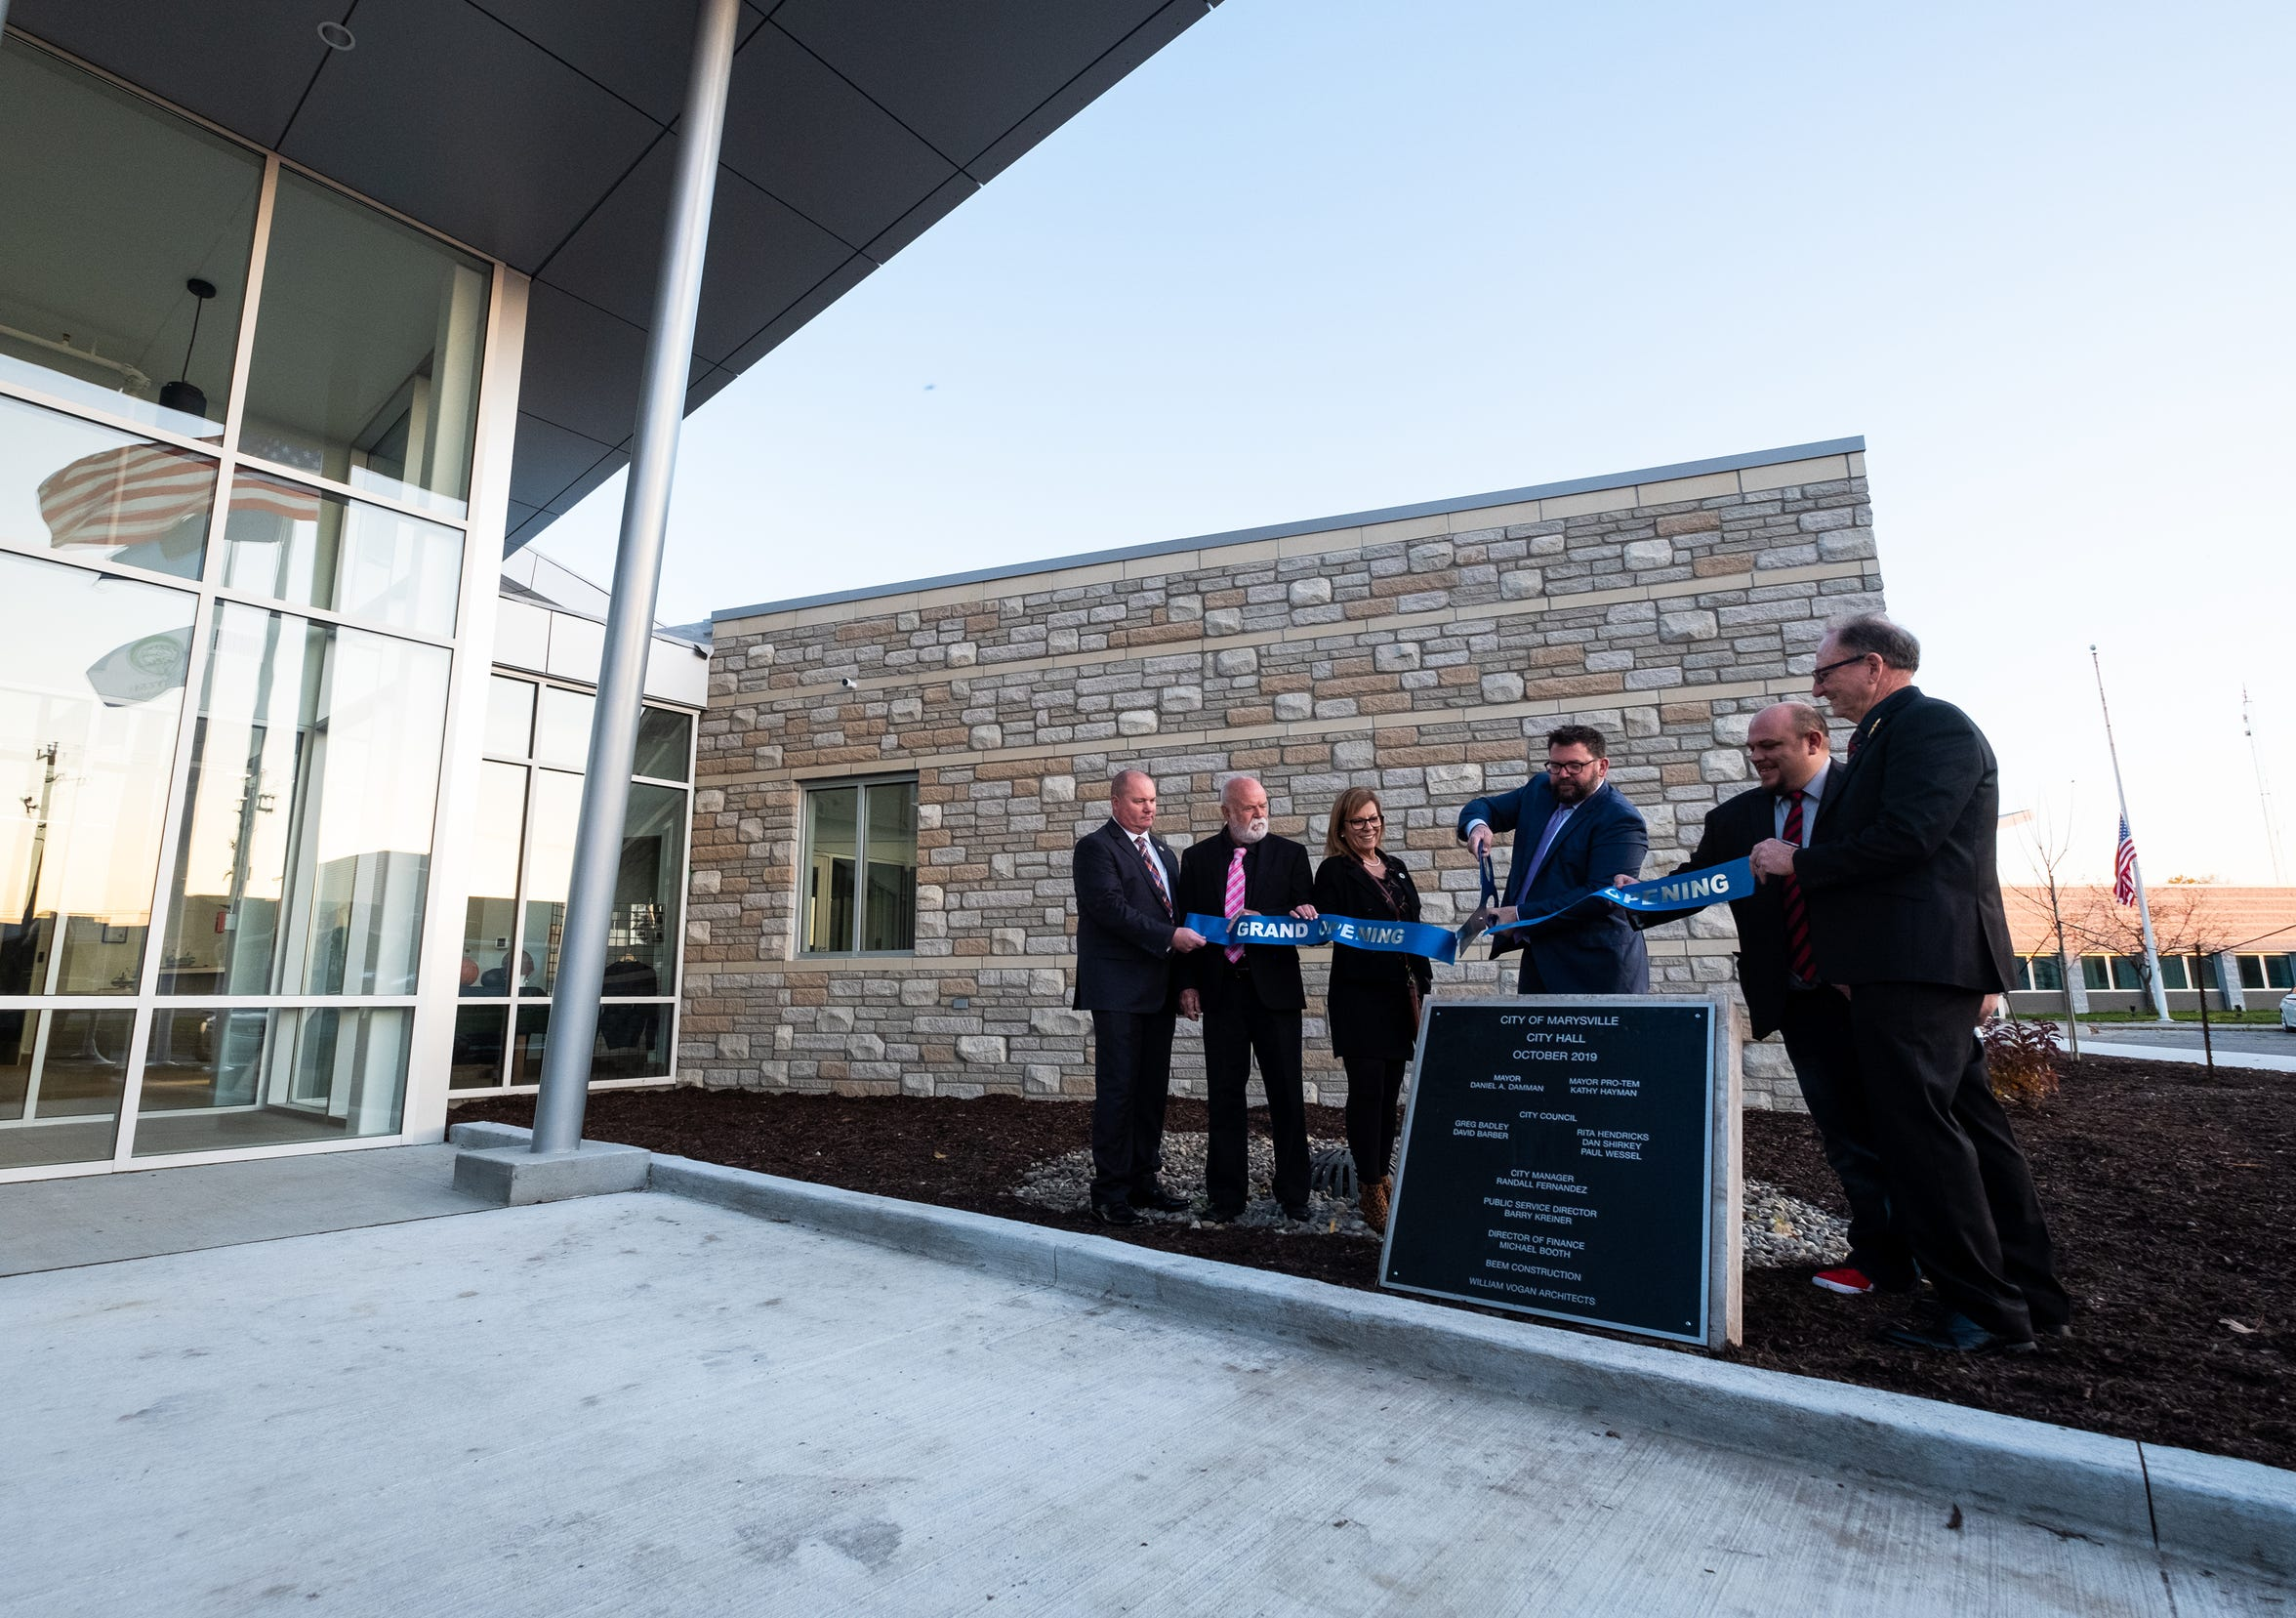 Marysville Mayor Dan Damman, center, participates in a ribbon cutting ceremony with members of the city council for the new city hall Monday, Oct. 28, 2019.